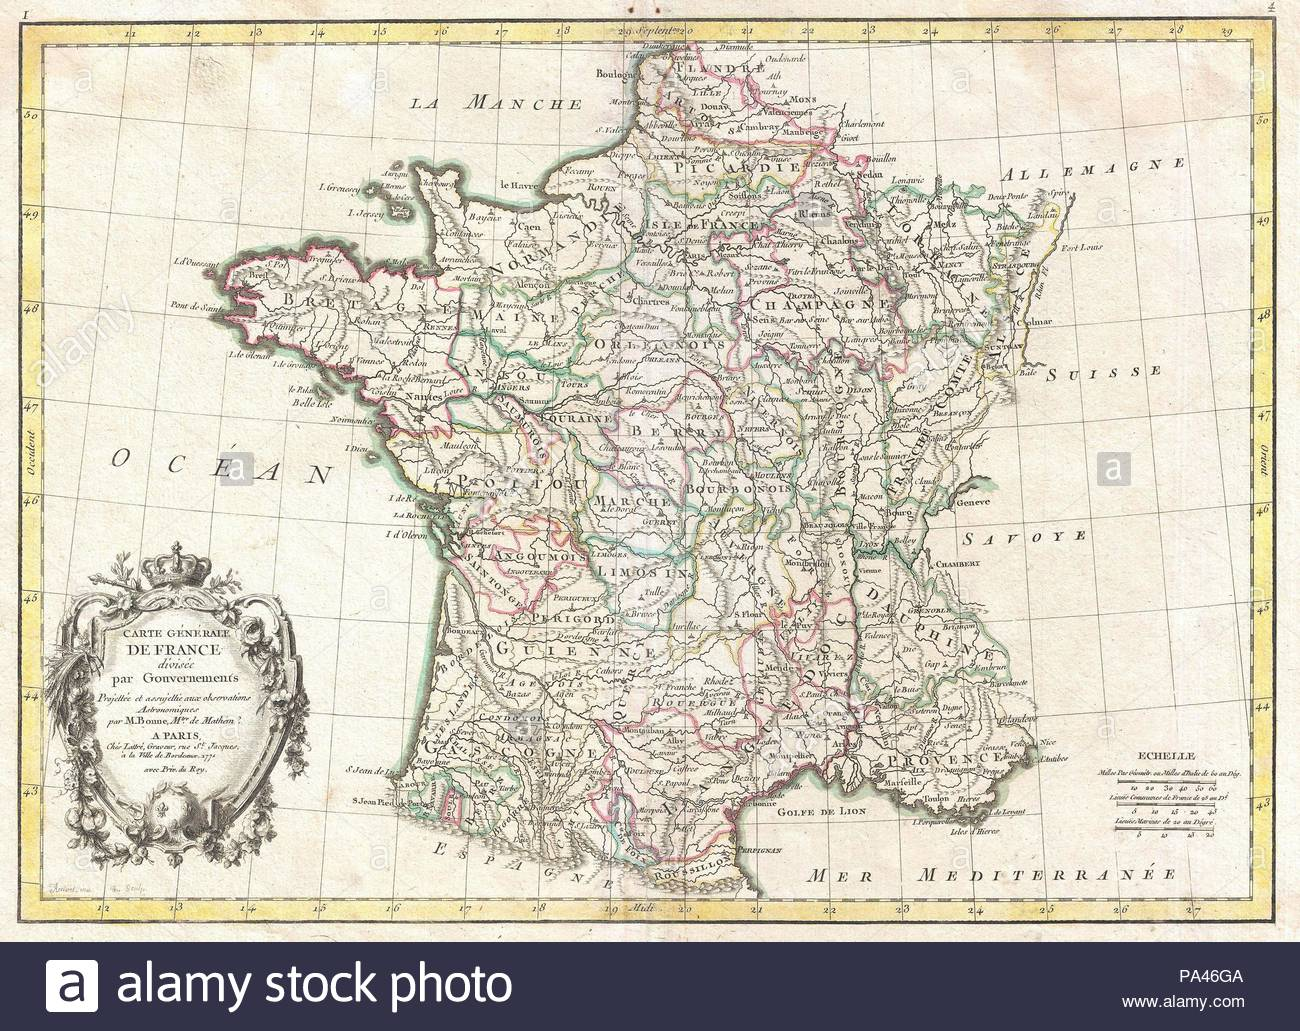 1771, Bonne Map of France, Rigobert Bonne 1727 – 1794, one of the most important cartographers of the late 18th century. - Stock Image